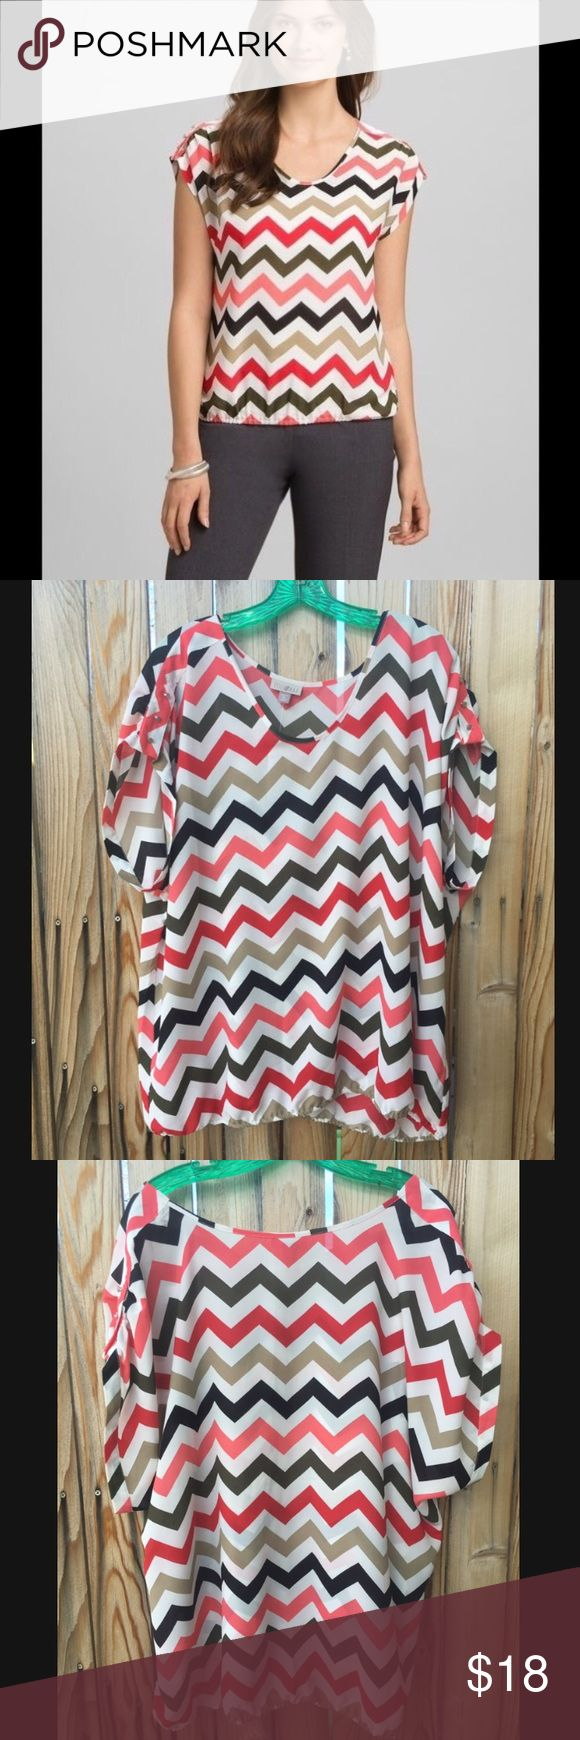 NEW with Tags Roz & Ali Chevron Blouse Beautiful multi-colored chevron blouse by Roz & Ali (Roz Ali.) Lovely chevron pattern in white, tan, olive green, pink, red & black.  Brand NEW w/Tags! Roz & Ali Tops Blouses